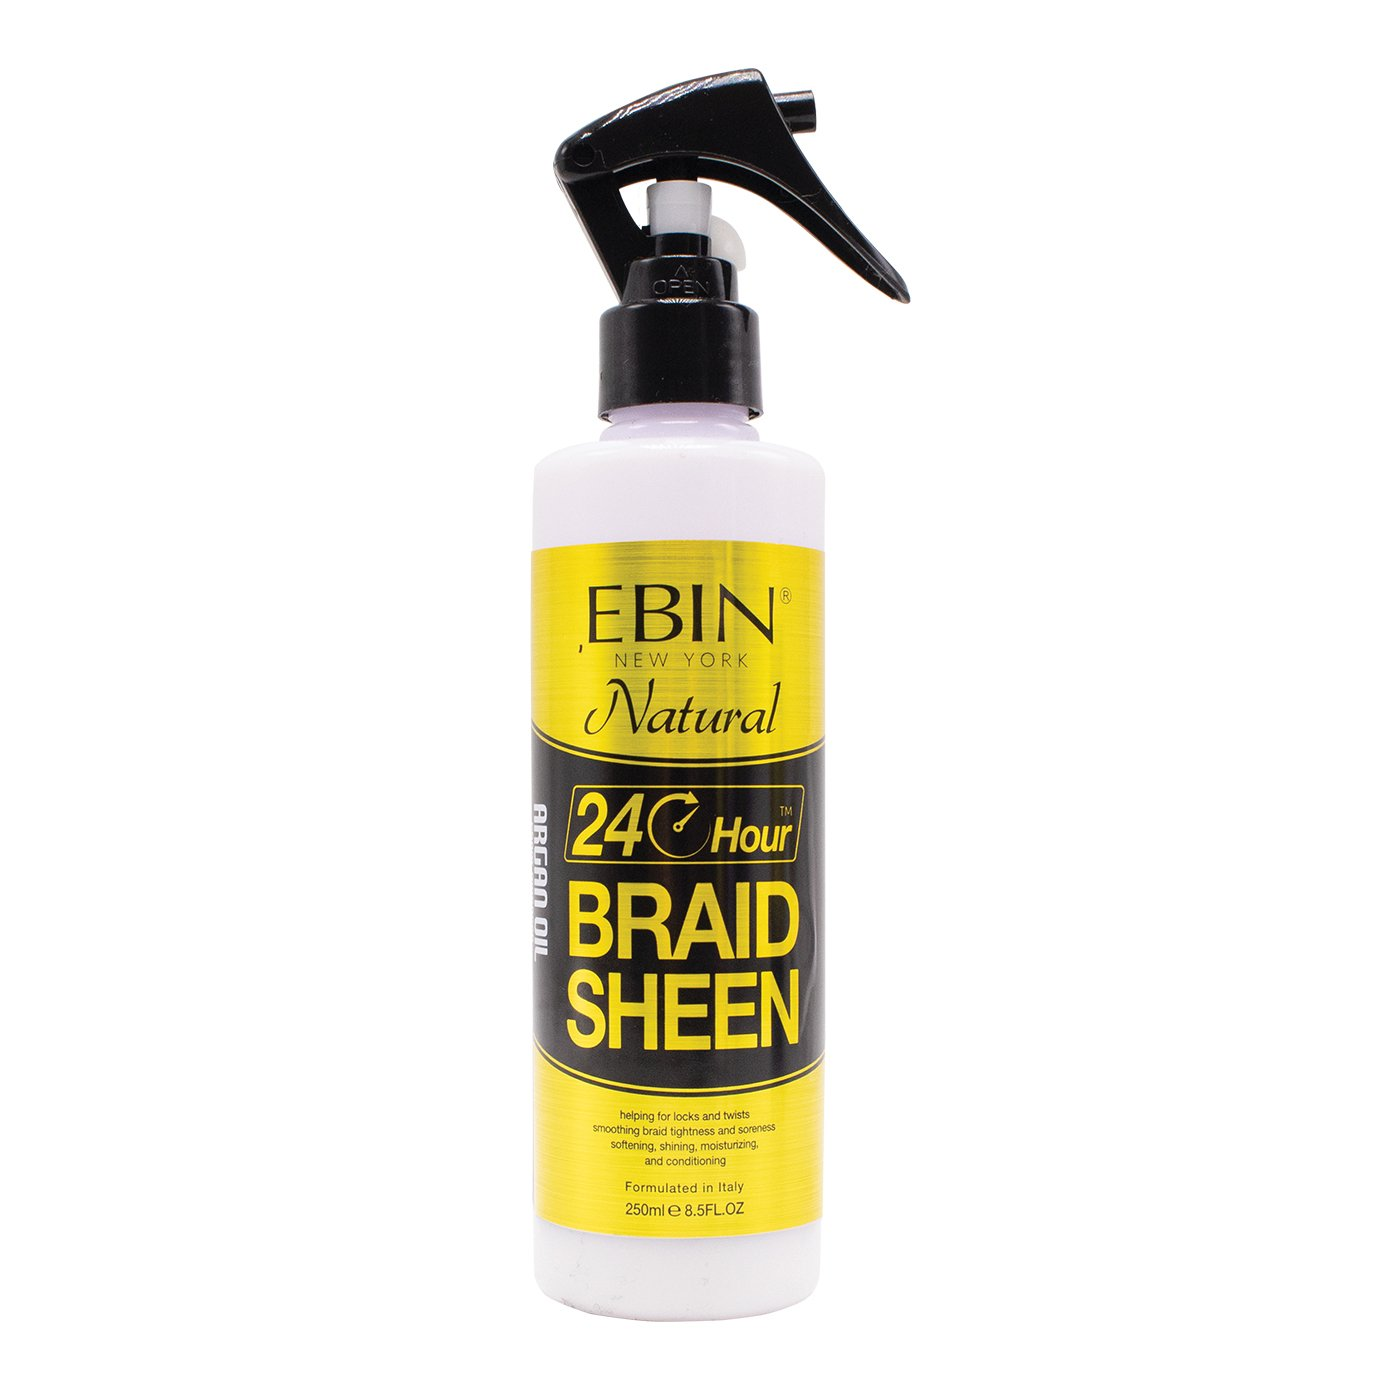 Ebin New York Natural 24 Hour Braid Sheen